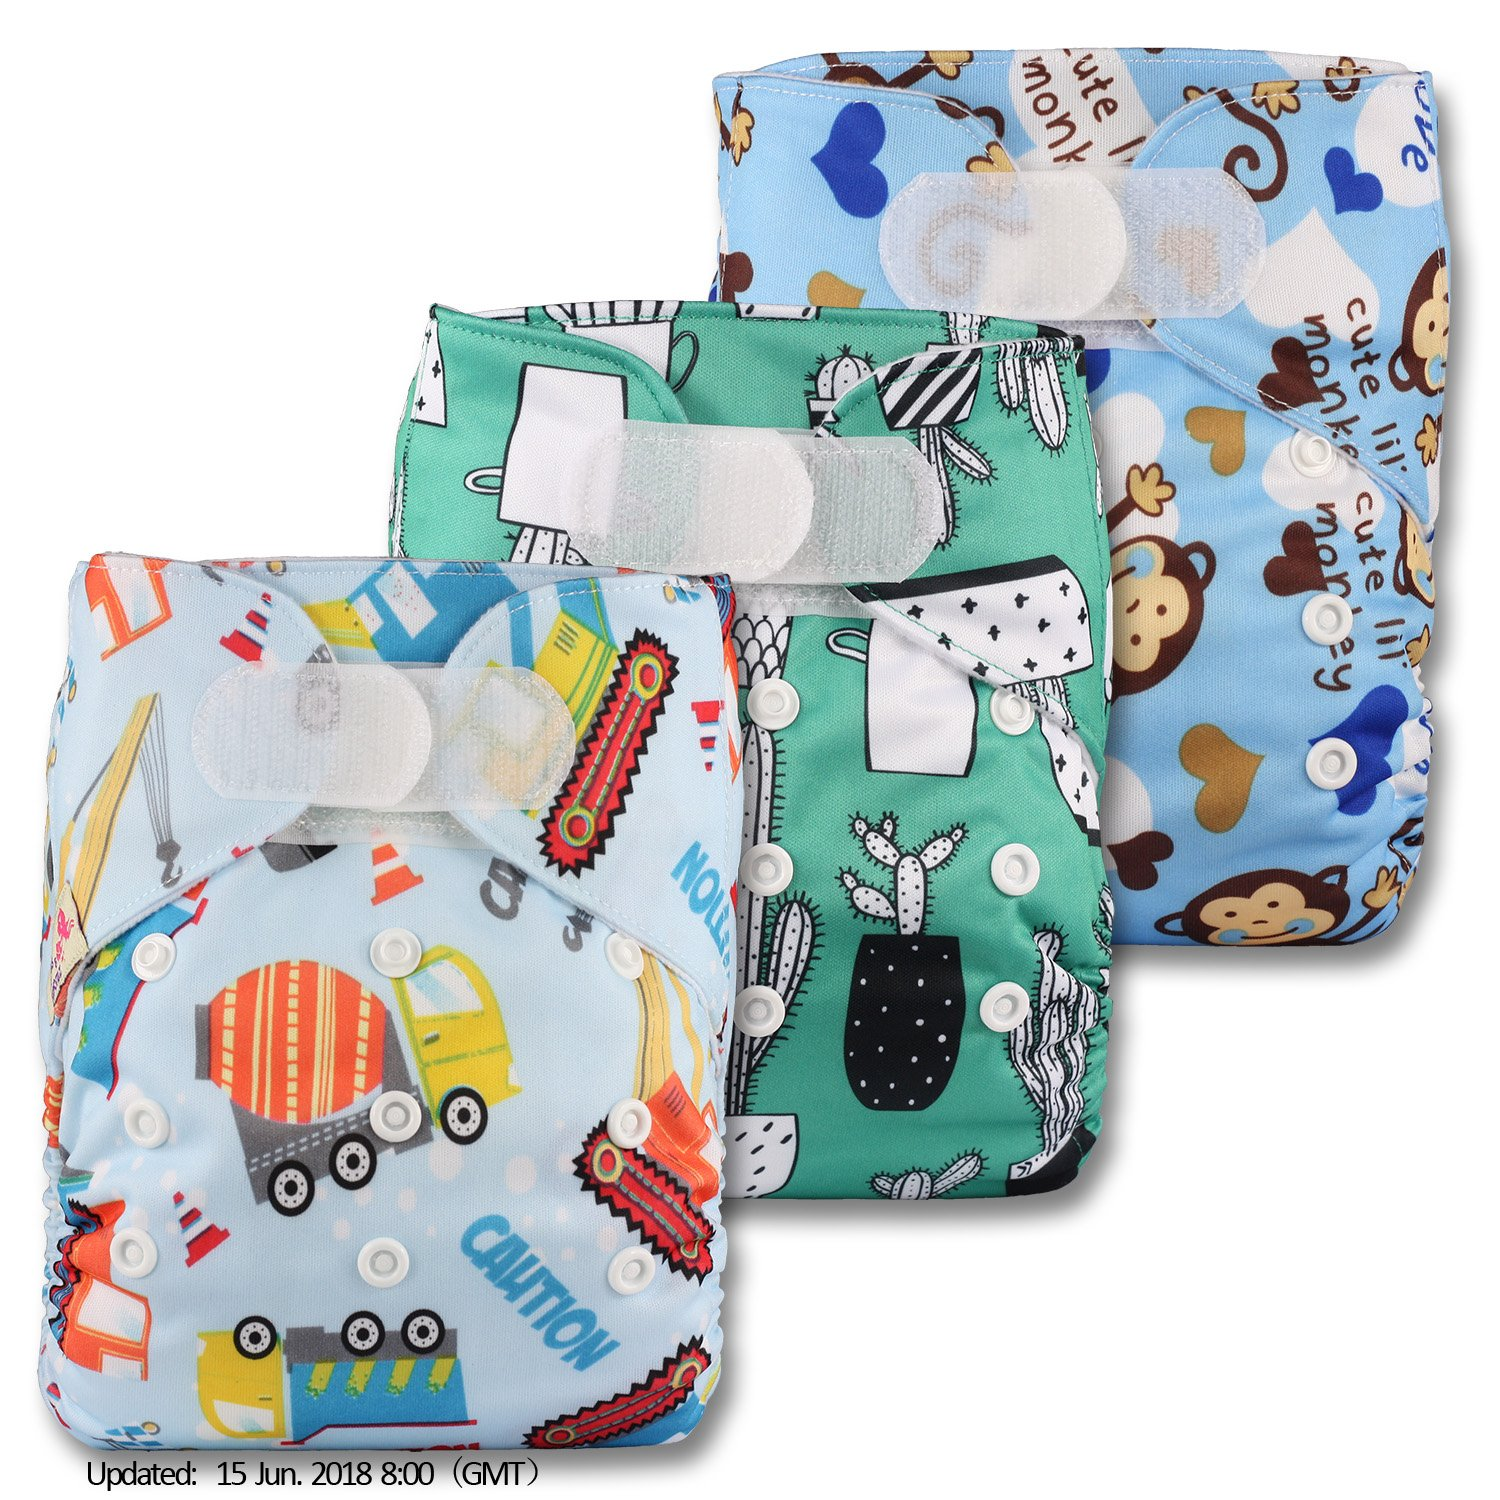 Littles & Bloomz, Reusable Pocket Cloth Nappy, Fastener: Hook-Loop, Set of 3, Patterns 301, Without Insert